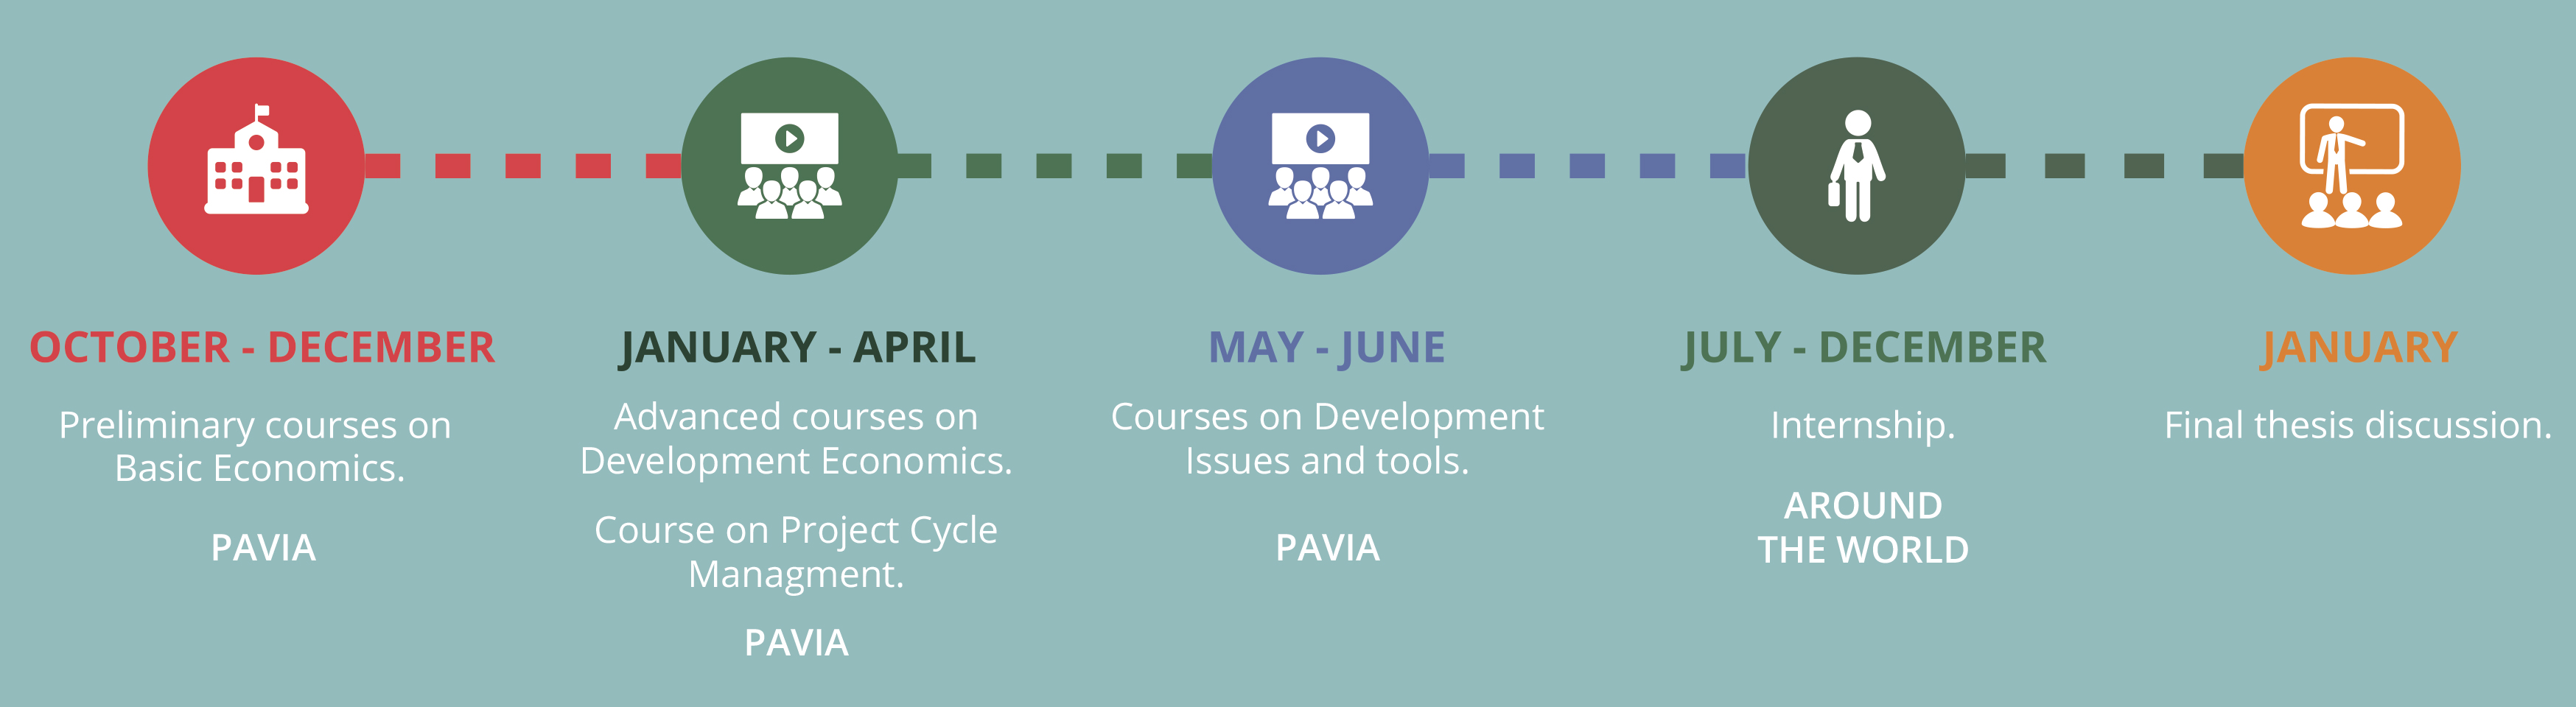 Master in Cooperation and Development Pavia | Cooperation and